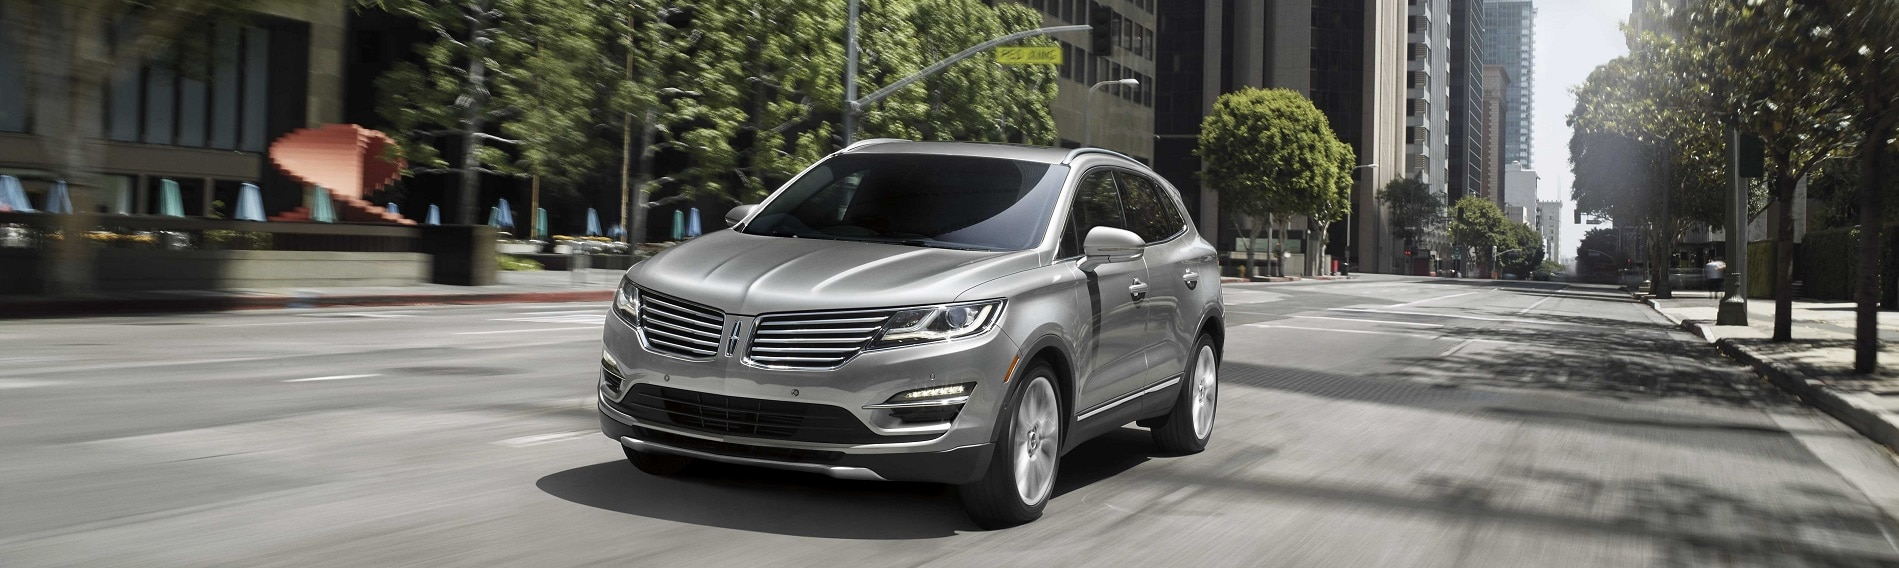 Lincoln MKC Mayfield Heights